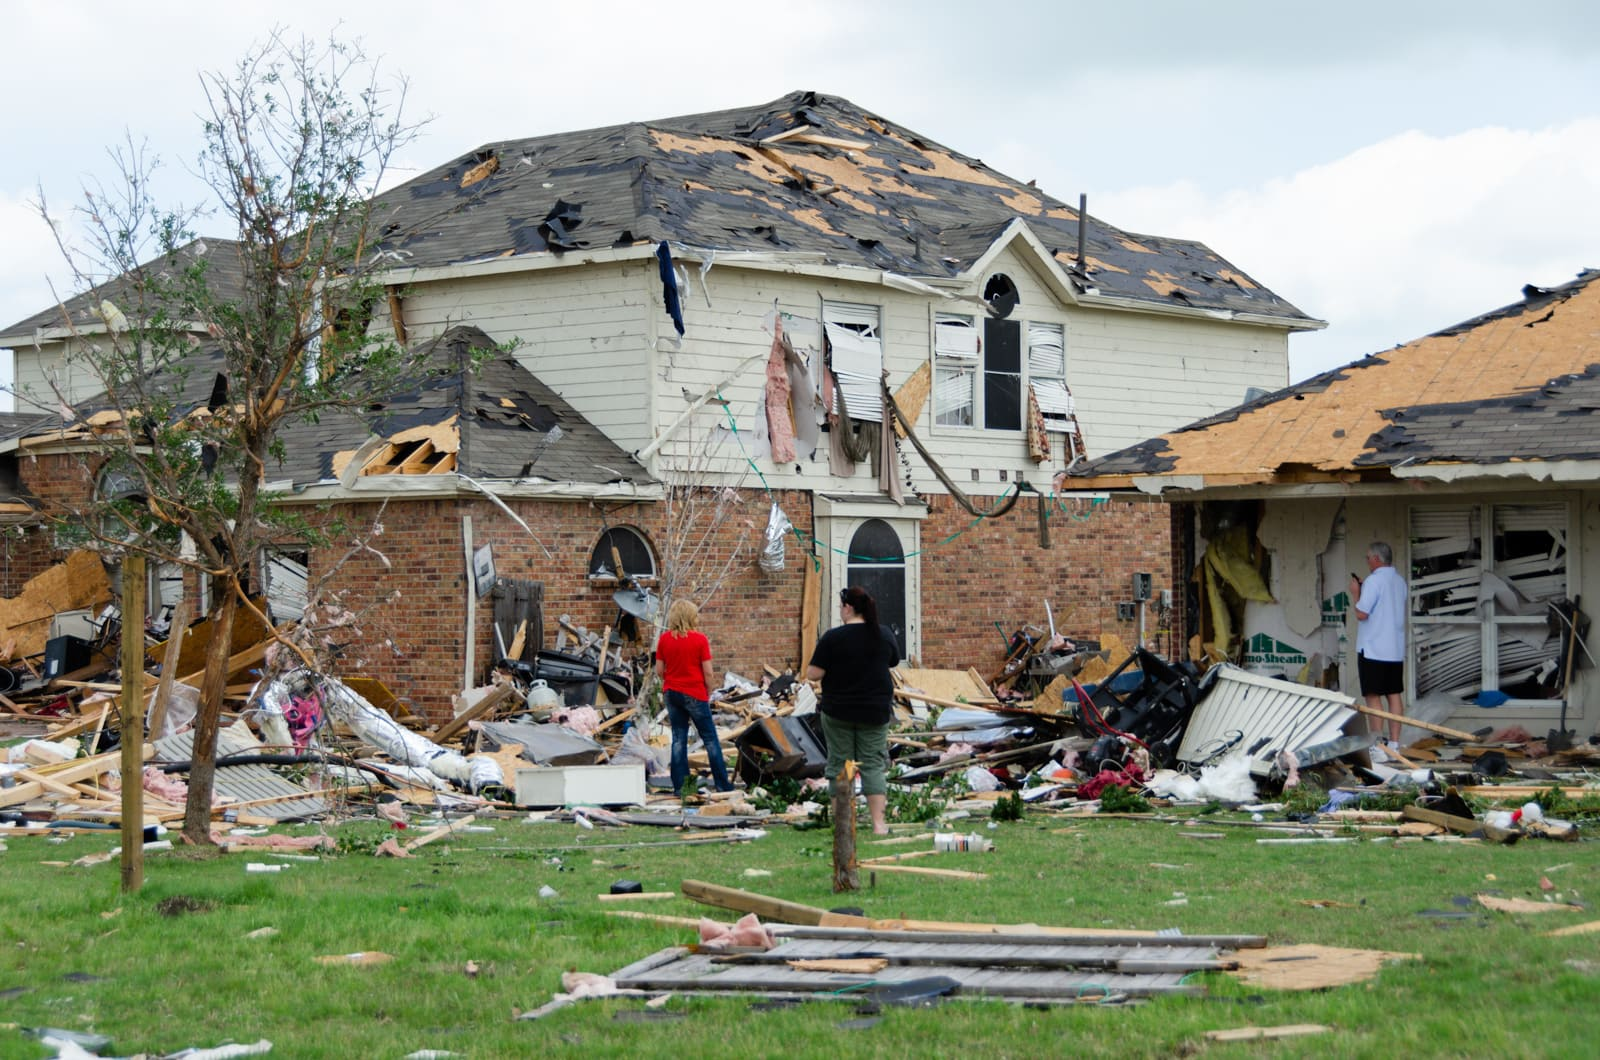 A severely damaged home